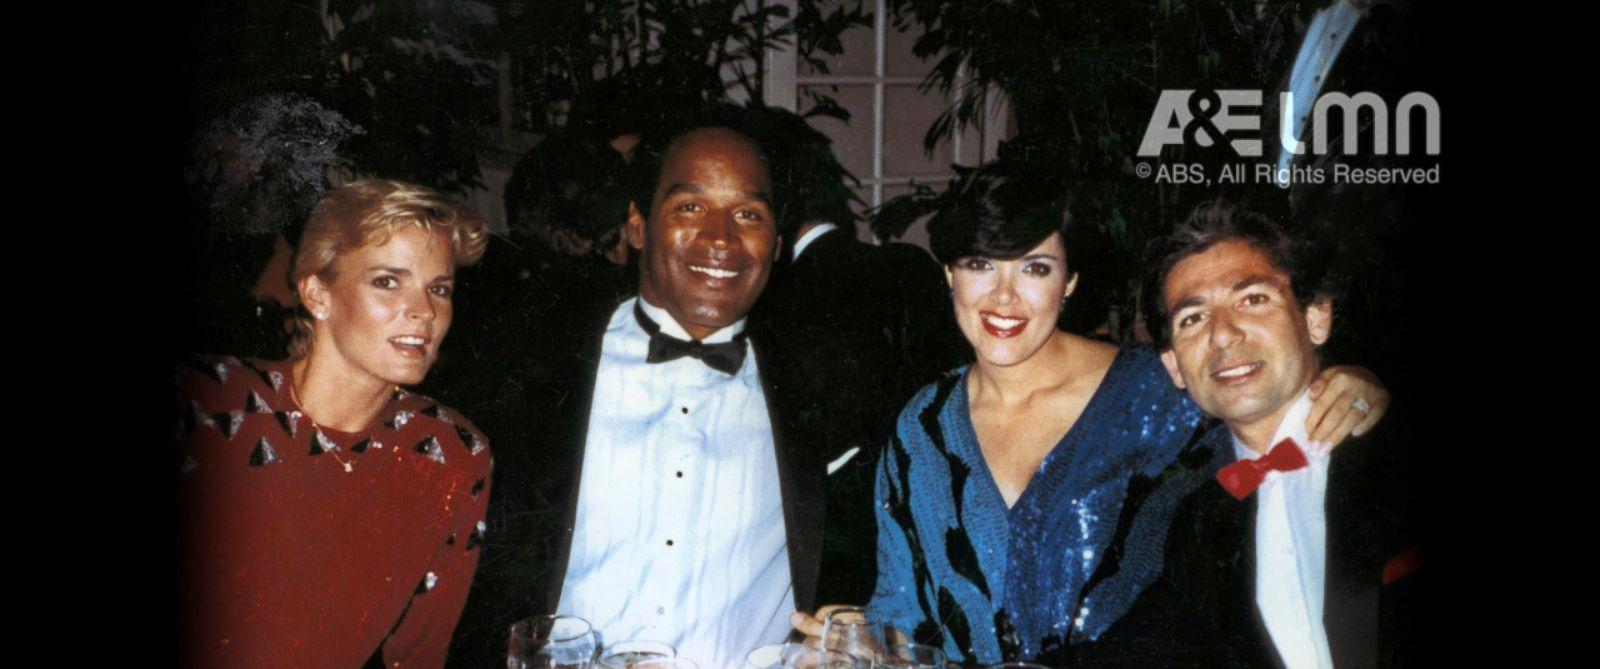 PHOTO: Nicole Brown Simpson, O.J. Simpson, Kris Jenner (then married to Robert Kardashian) and Robert Kardashian are pictured together in this undated photo.